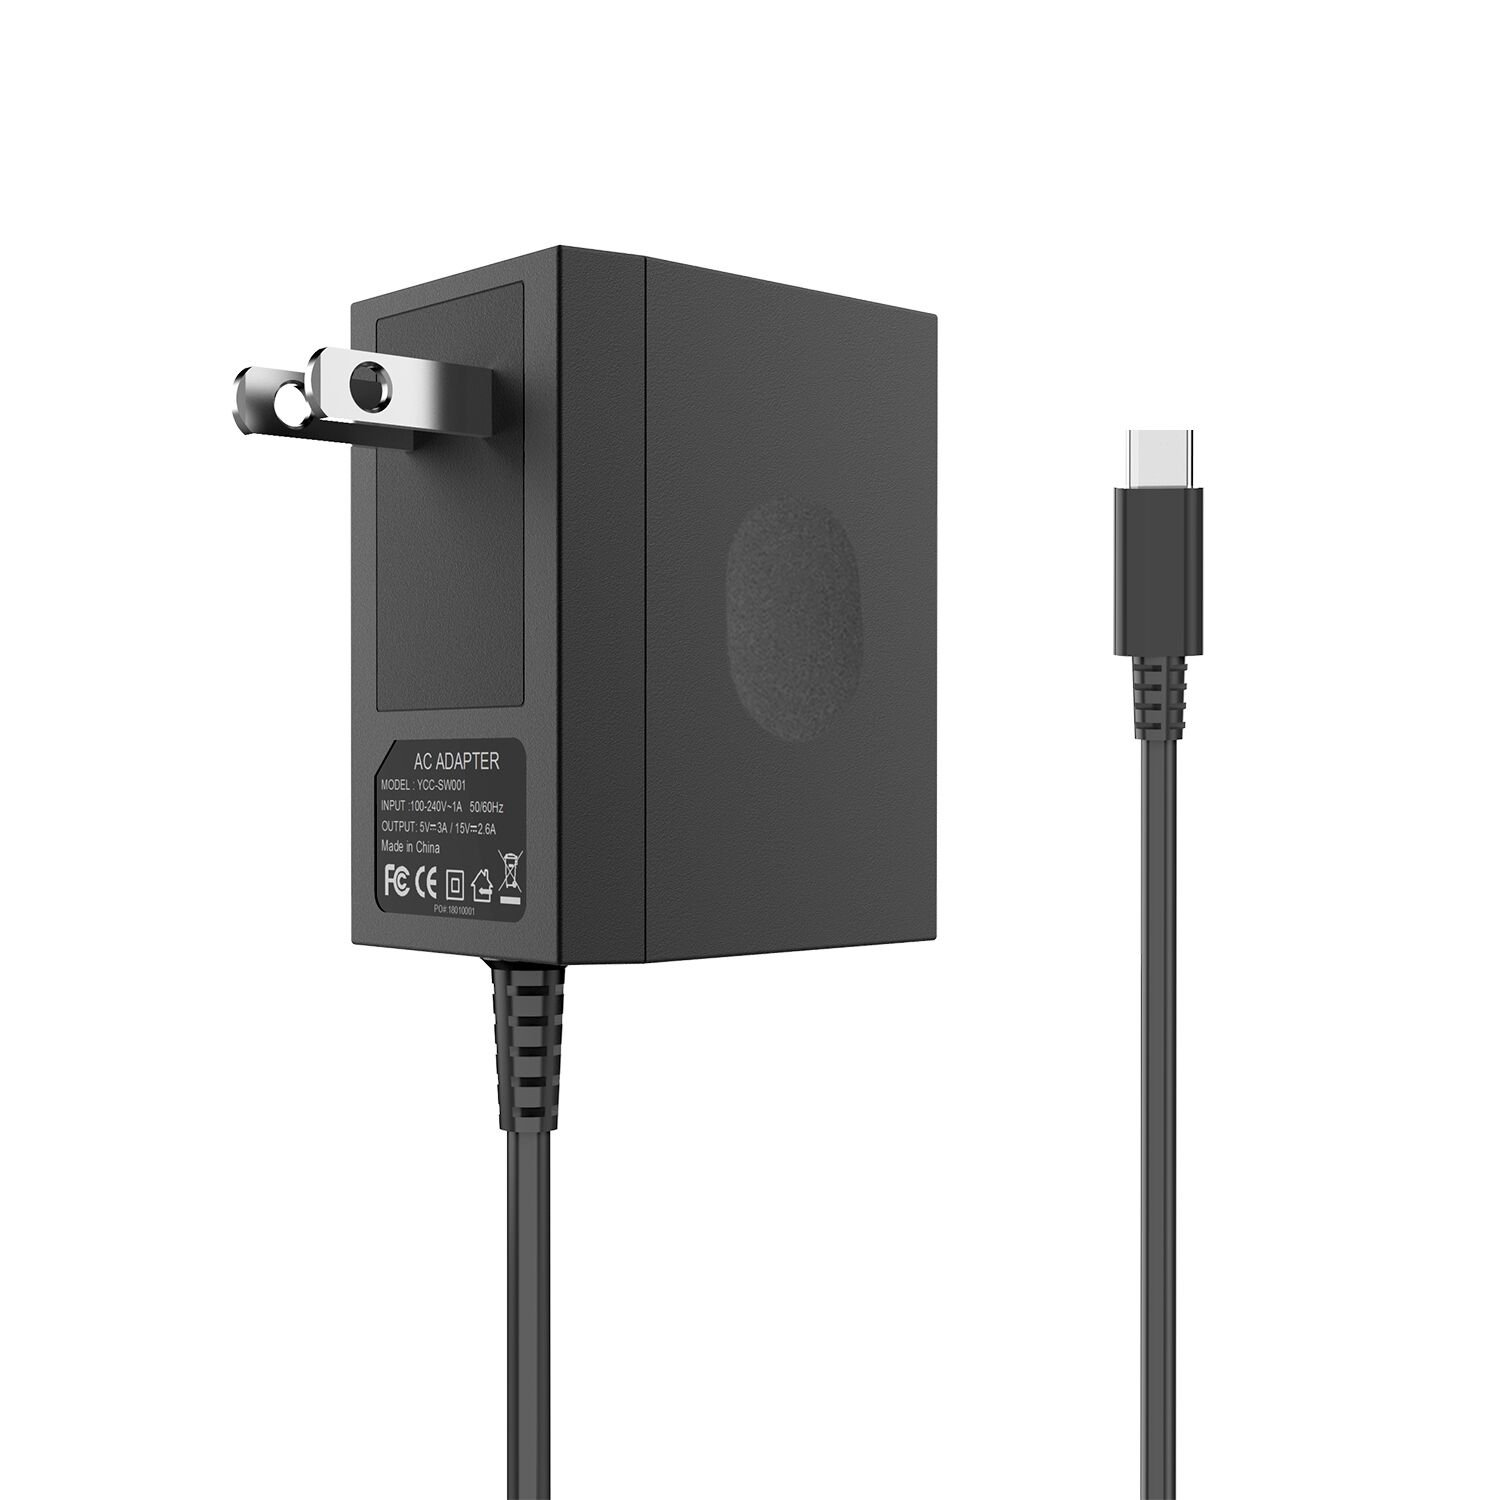 AC Adapter for Nintendo Switch DC15V/2.6A Switch Power Adapter with 5FT Cord Switch Fast Travel Charger with Type C Nintendo Switch Wall Charger for Nintendo Switch Support TV Mode and Dock Station